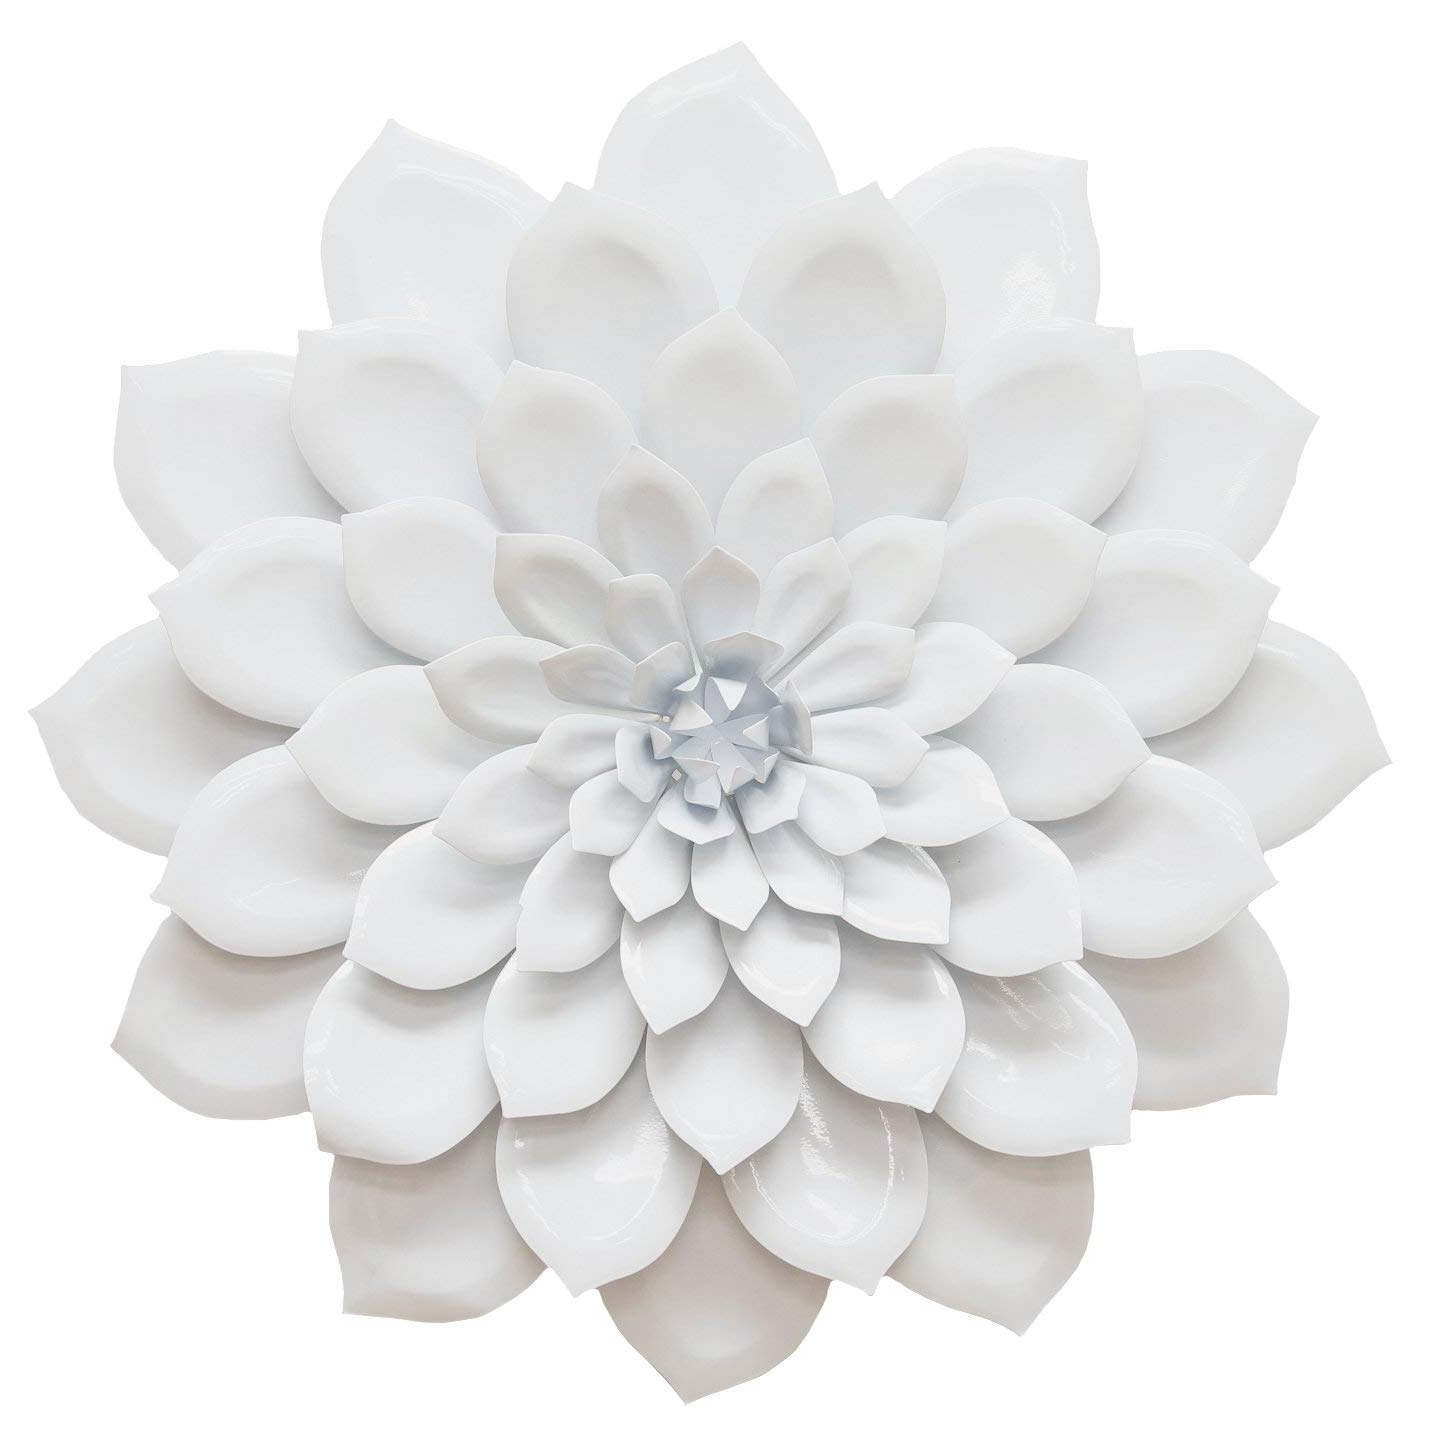 Zgvkqnsl Sl Stunning Metal Flower Wall Art – Home Design And Wall With Regard To Most Up To Date Metal Flower Wall Art (View 15 of 15)